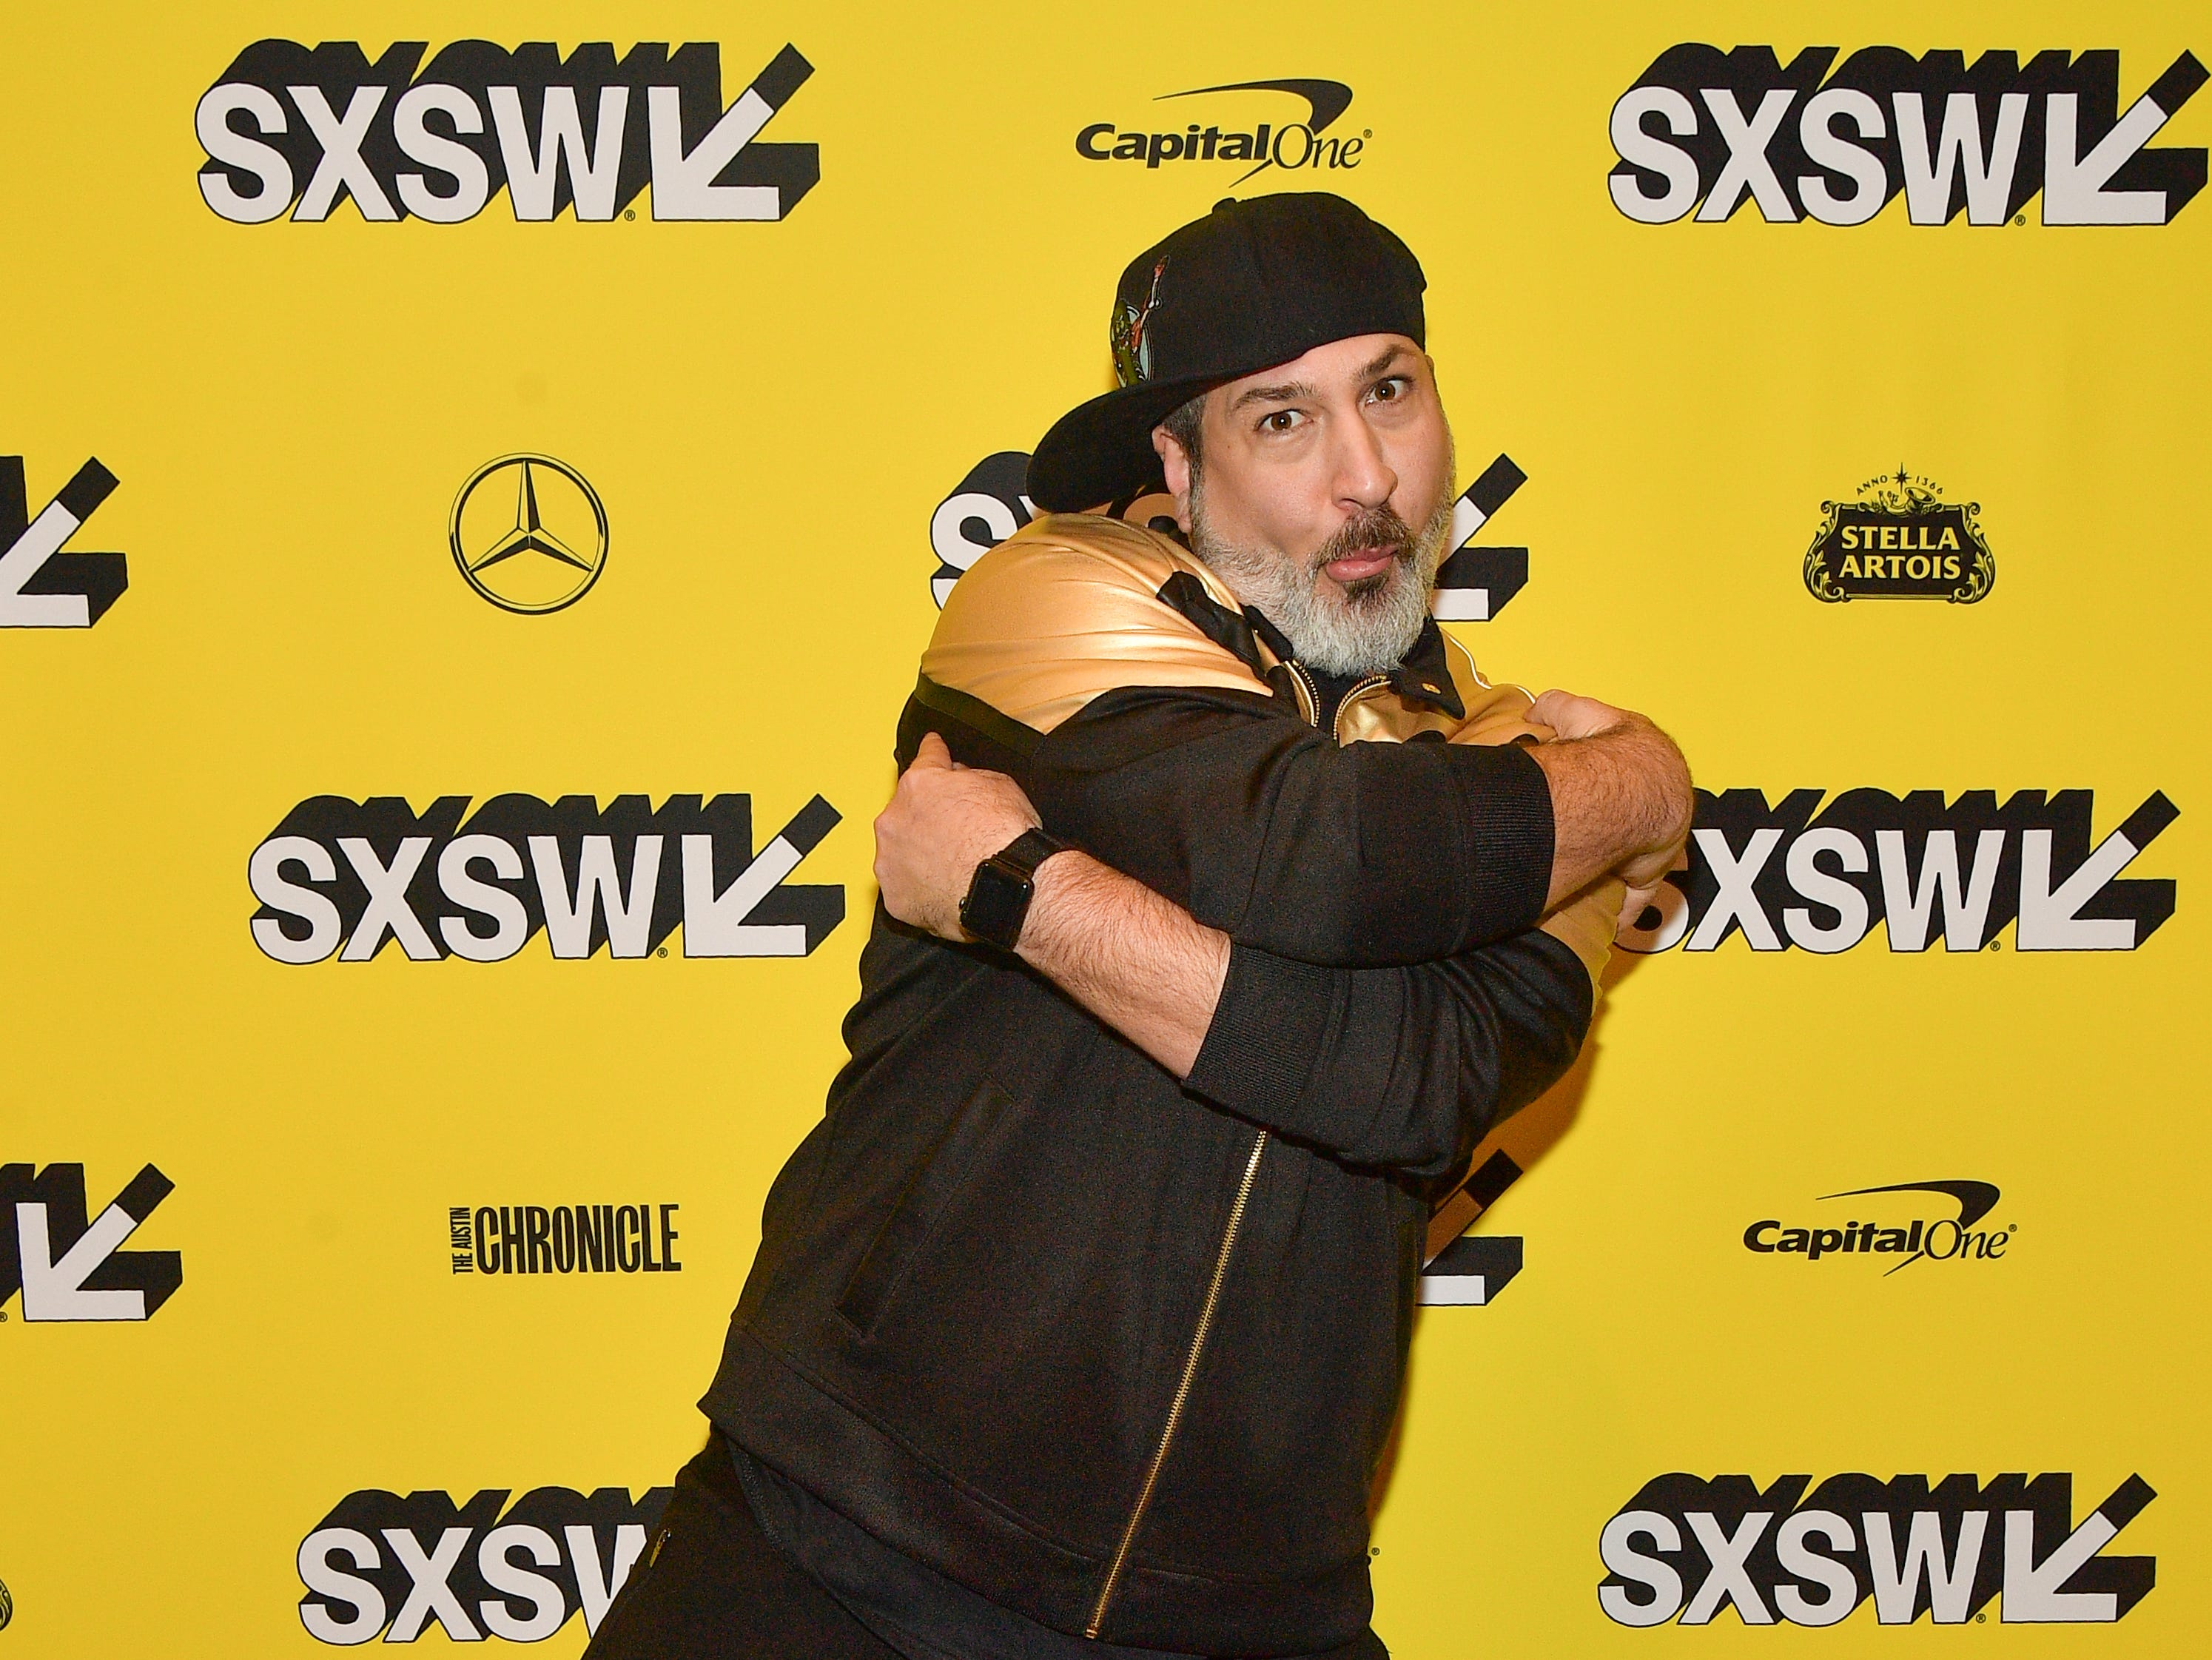 "AUSTIN, TEXAS - MARCH 13: Joey Fatone attends the ""The Boy Band Con: The Lou Pearlman Story"" Premiere - 2019 SXSW Conference and Festivals at Paramount Theatre on March 13, 2019 in Austin, Texas. (Photo by Matt Winkelmeyer/Getty Images for SXSW) ORG XMIT: 775313185 ORIG FILE ID: 1135616255"